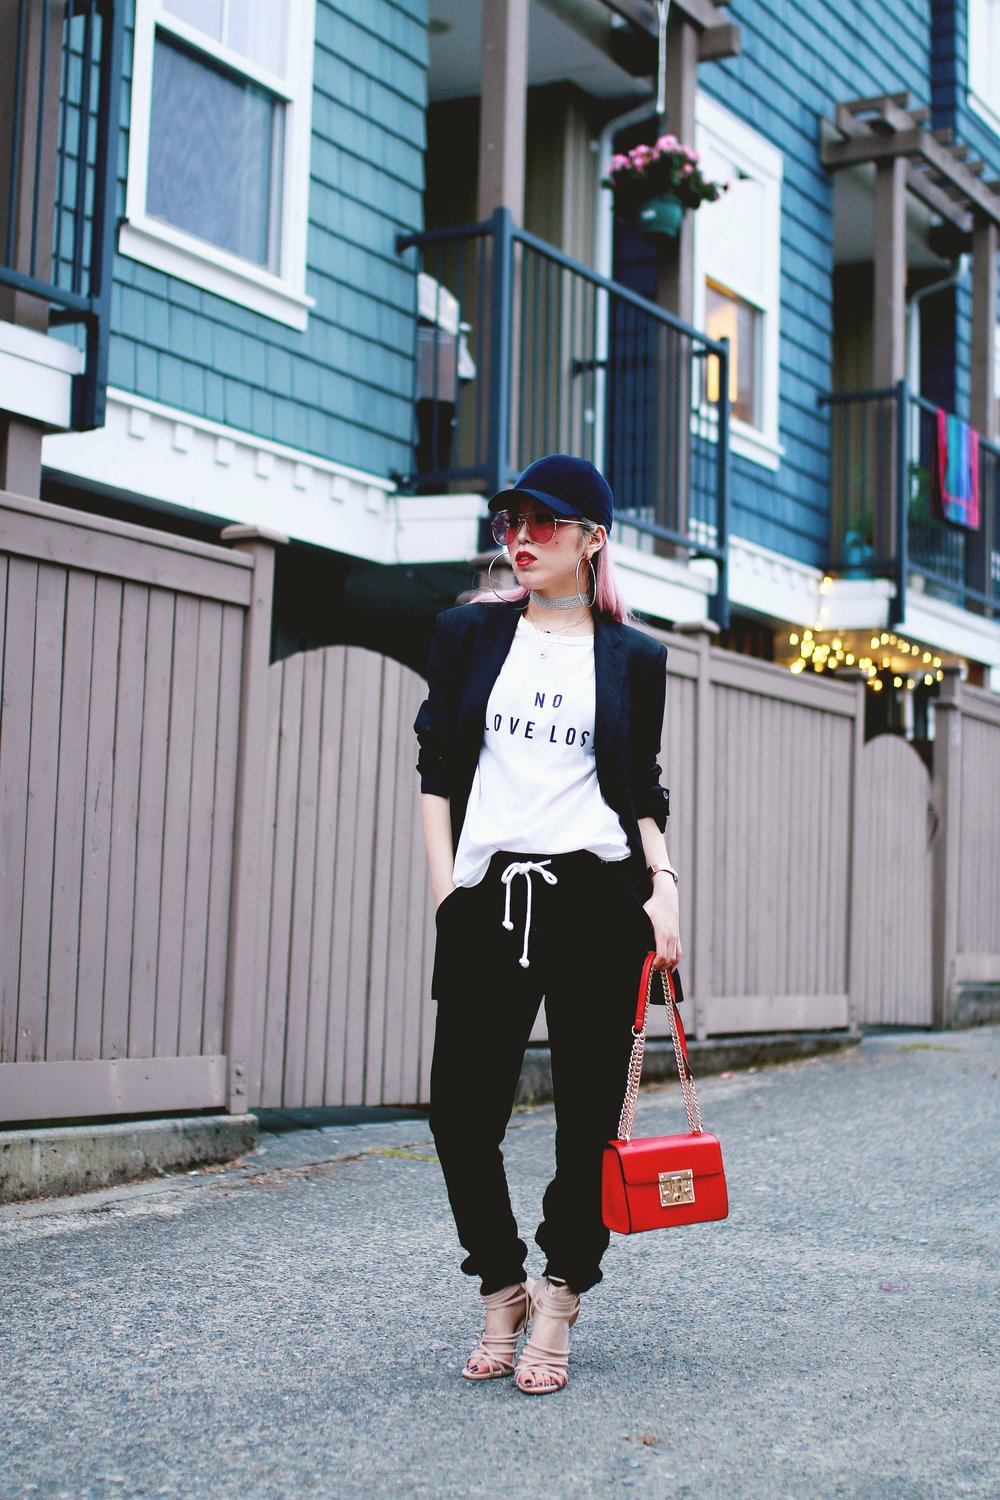 H&M Baseball Cap_Shop Sincerely Jules No LOVE LOST Tee_H&M Sweatpants_YSL Boyfriend Blazer_Zara Choker_Forever 21 Hoop Earrings_Mellow World Red Bag_Charlotte Russe Nude Sandals_L'Oreal Red Lipstick_Aikas Love Closet_Seattle Fashion Style Blogger_Pink Hair 2